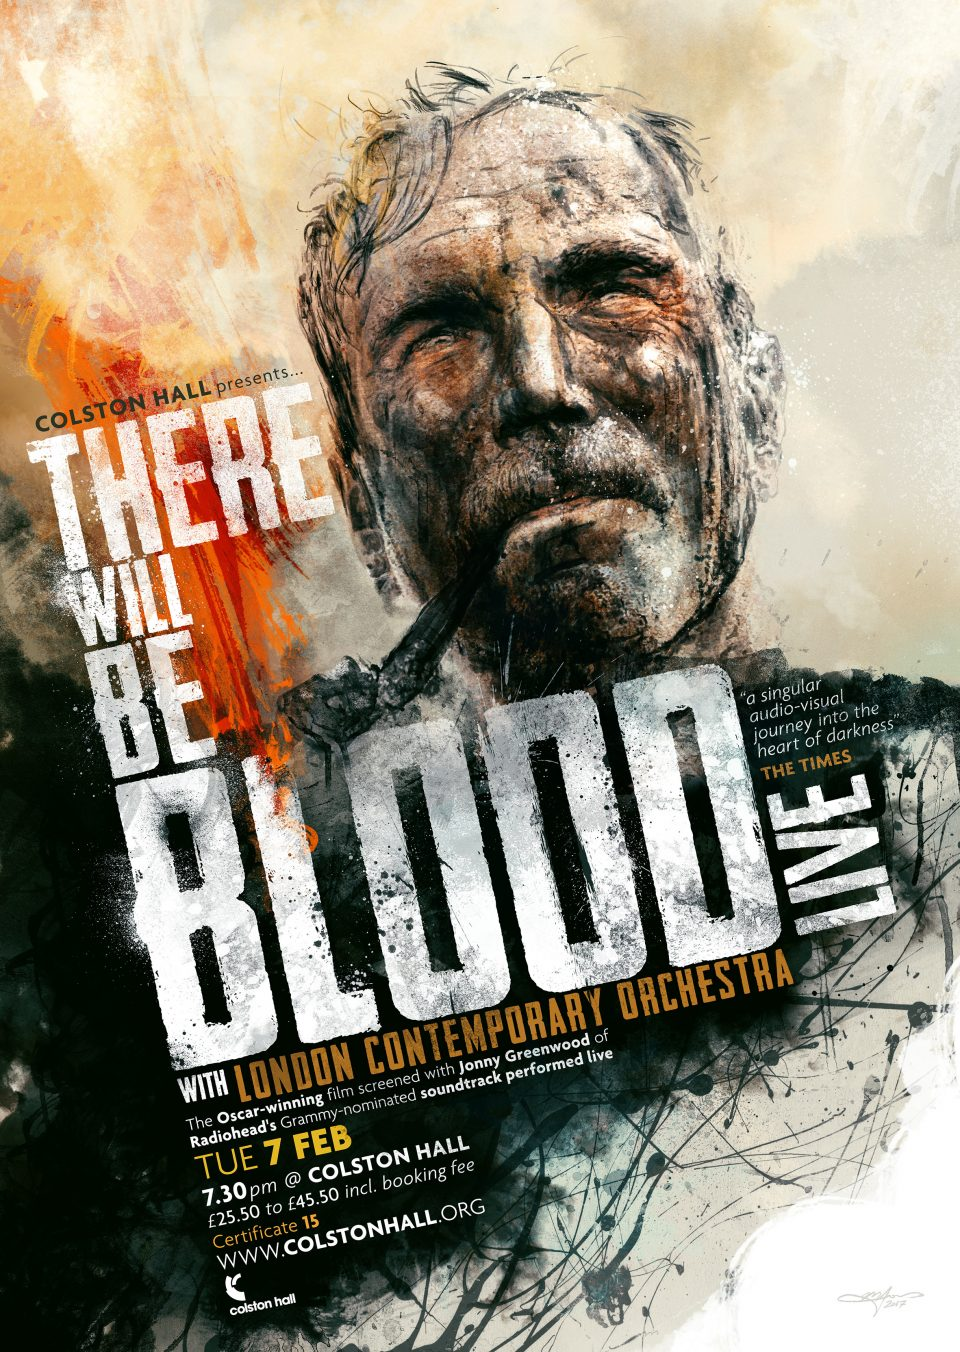 There Will Be Blood Live - Poster